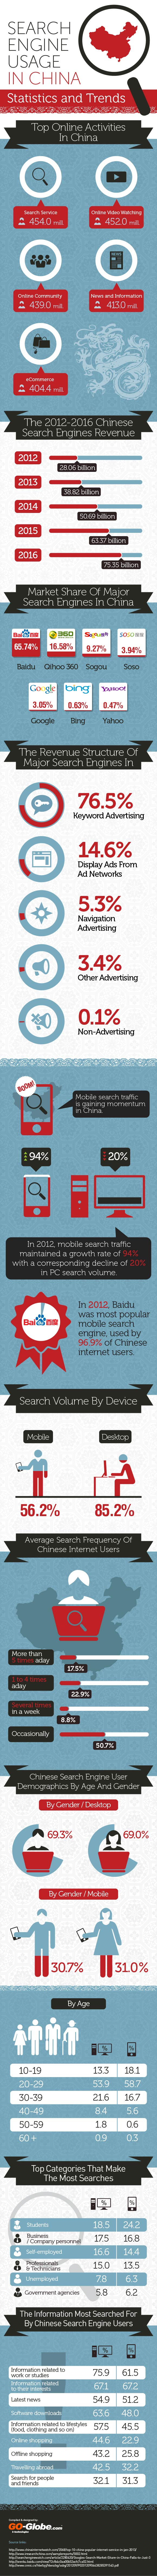 Check out the netizens and companies behind China's $39 billion search engine market